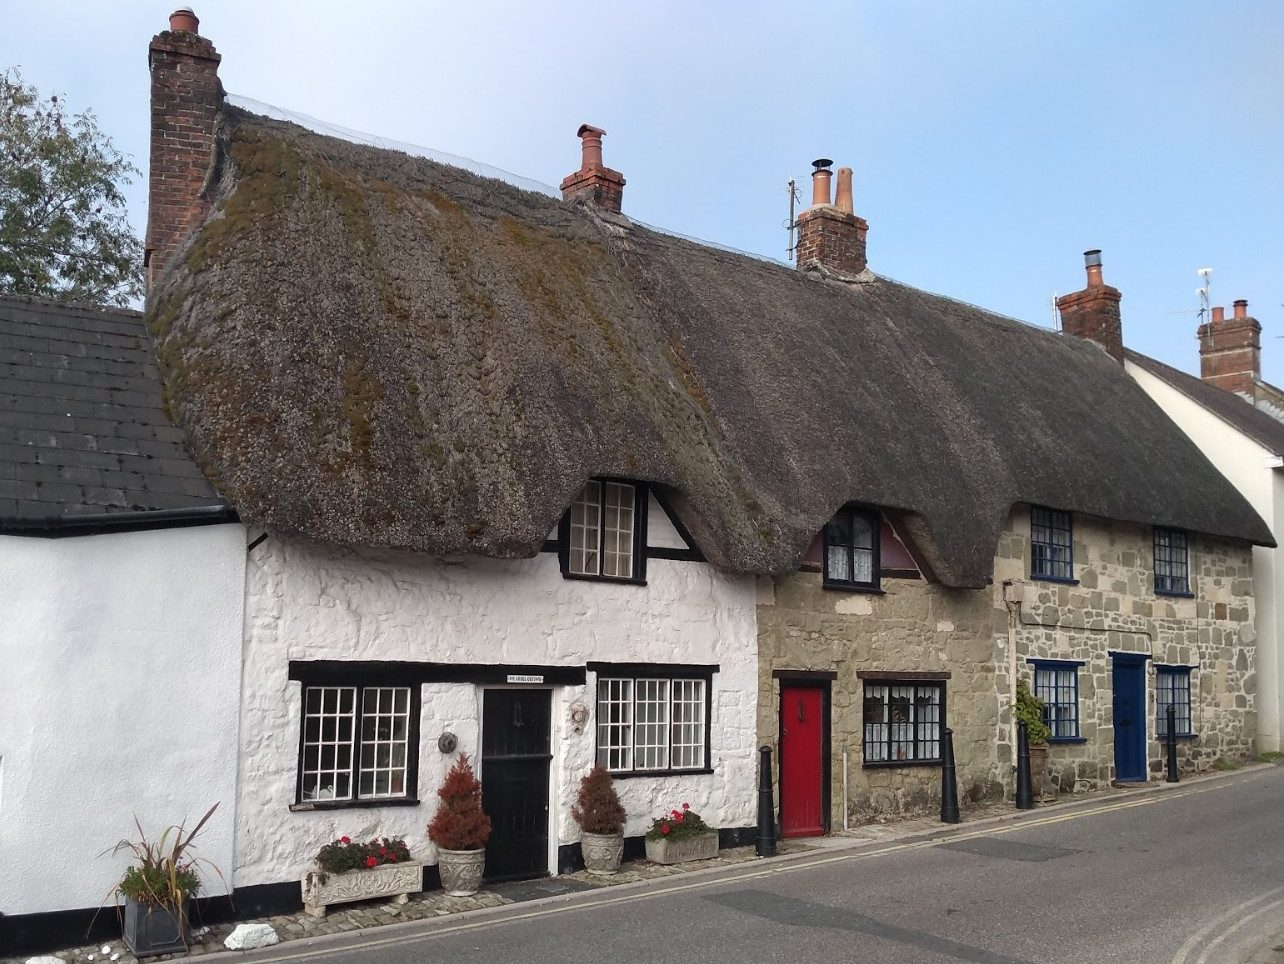 Thatched Cottages in Shaftesbury